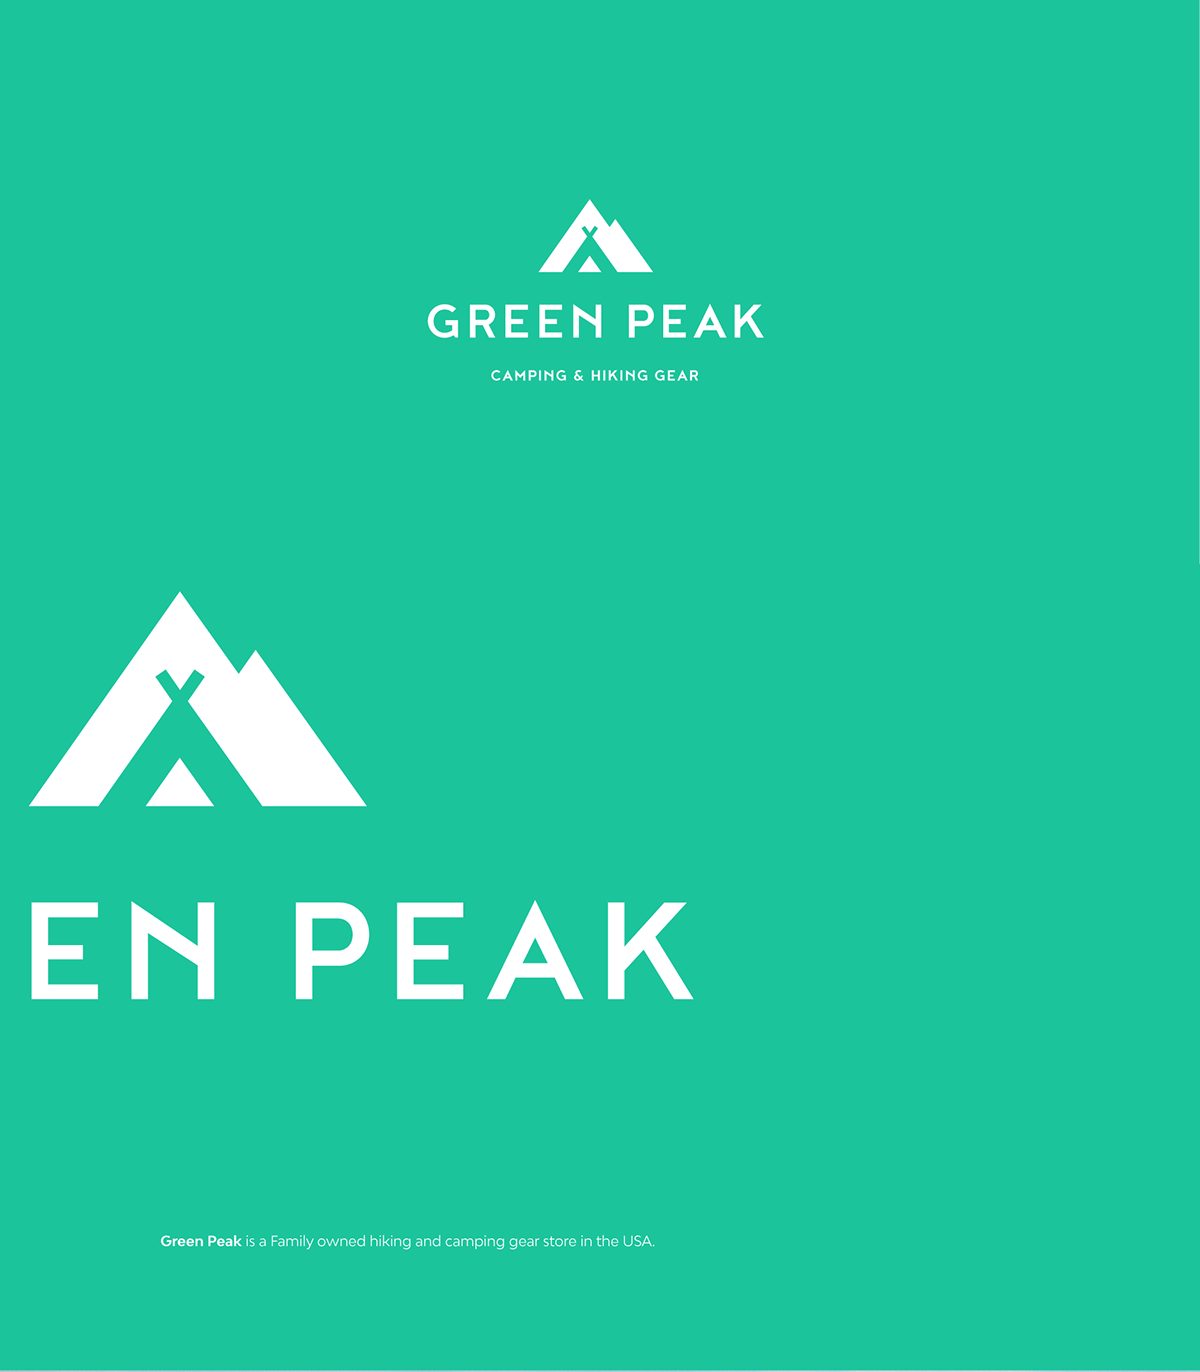 professional, flat logo for Green Peak. Outdoor logo, Hiking and camping logo design. Mountain and tent in the negative space.